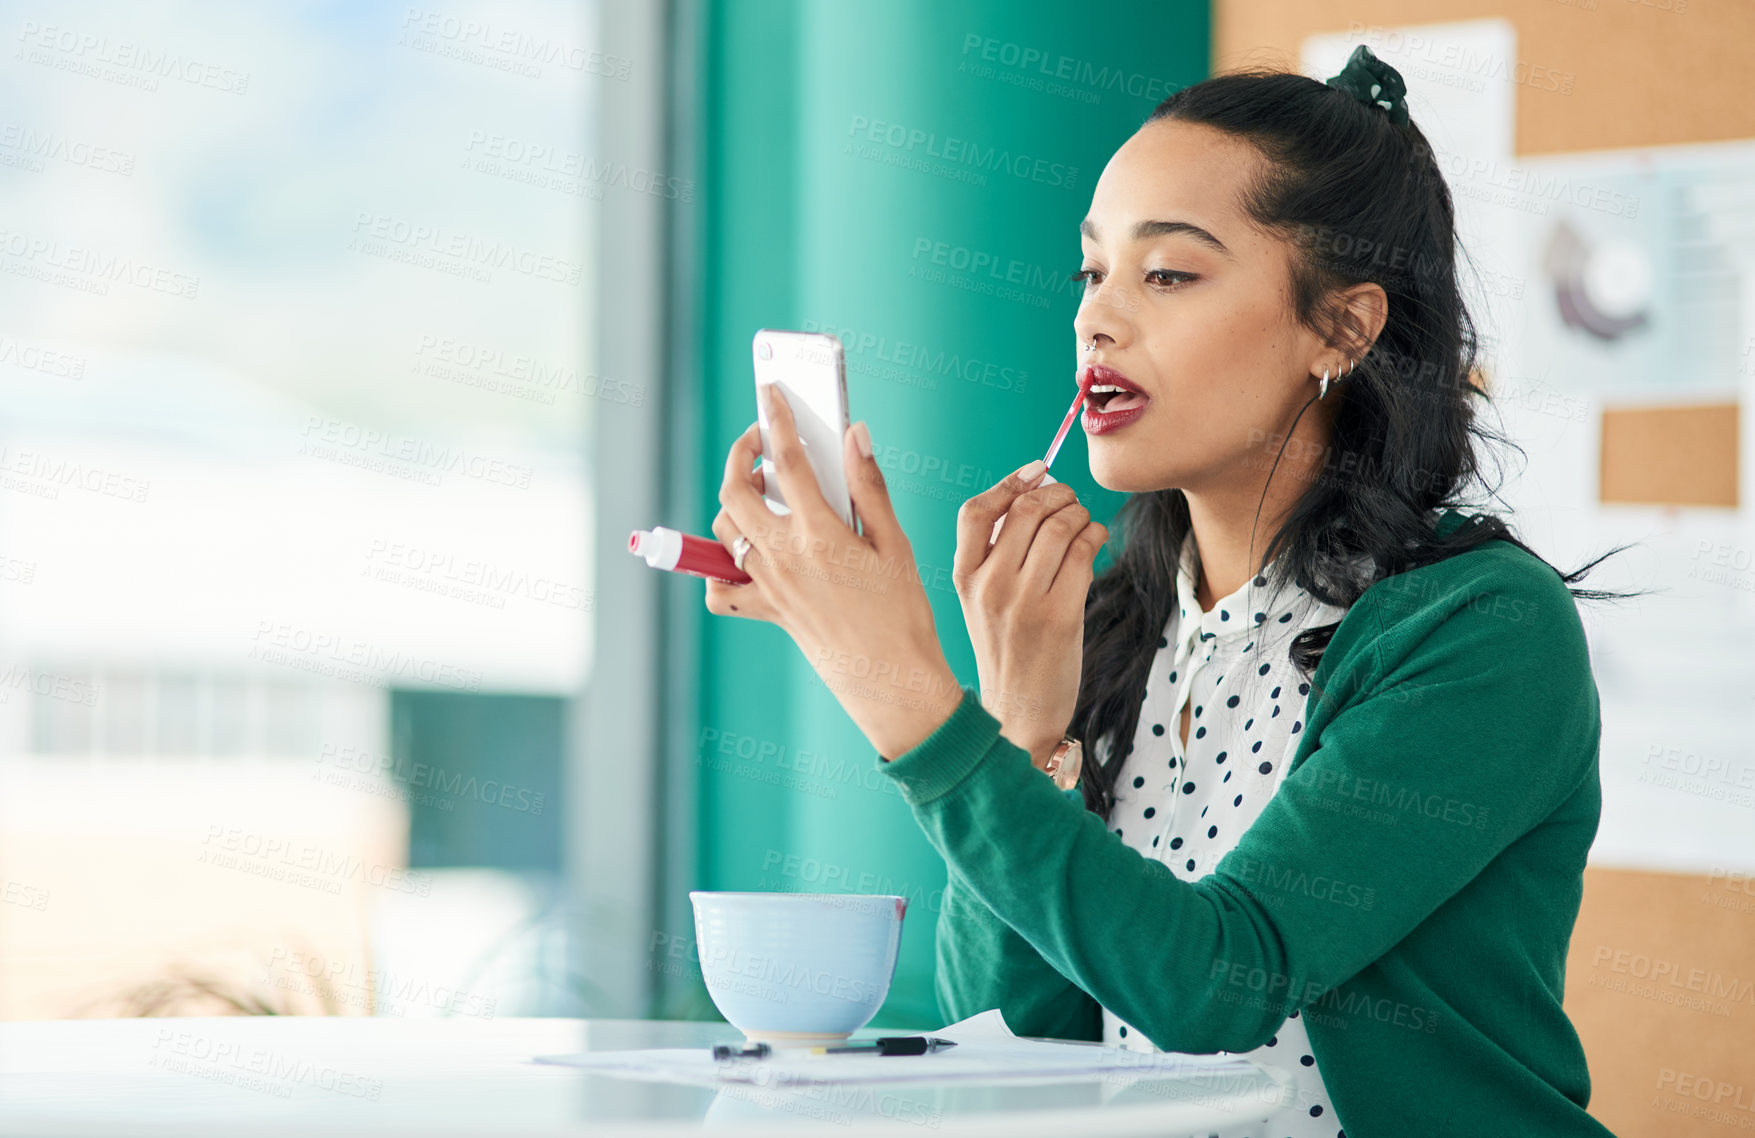 Buy stock photo Shot of a young businesswoman applying lipstick using a smartphone in a modern office